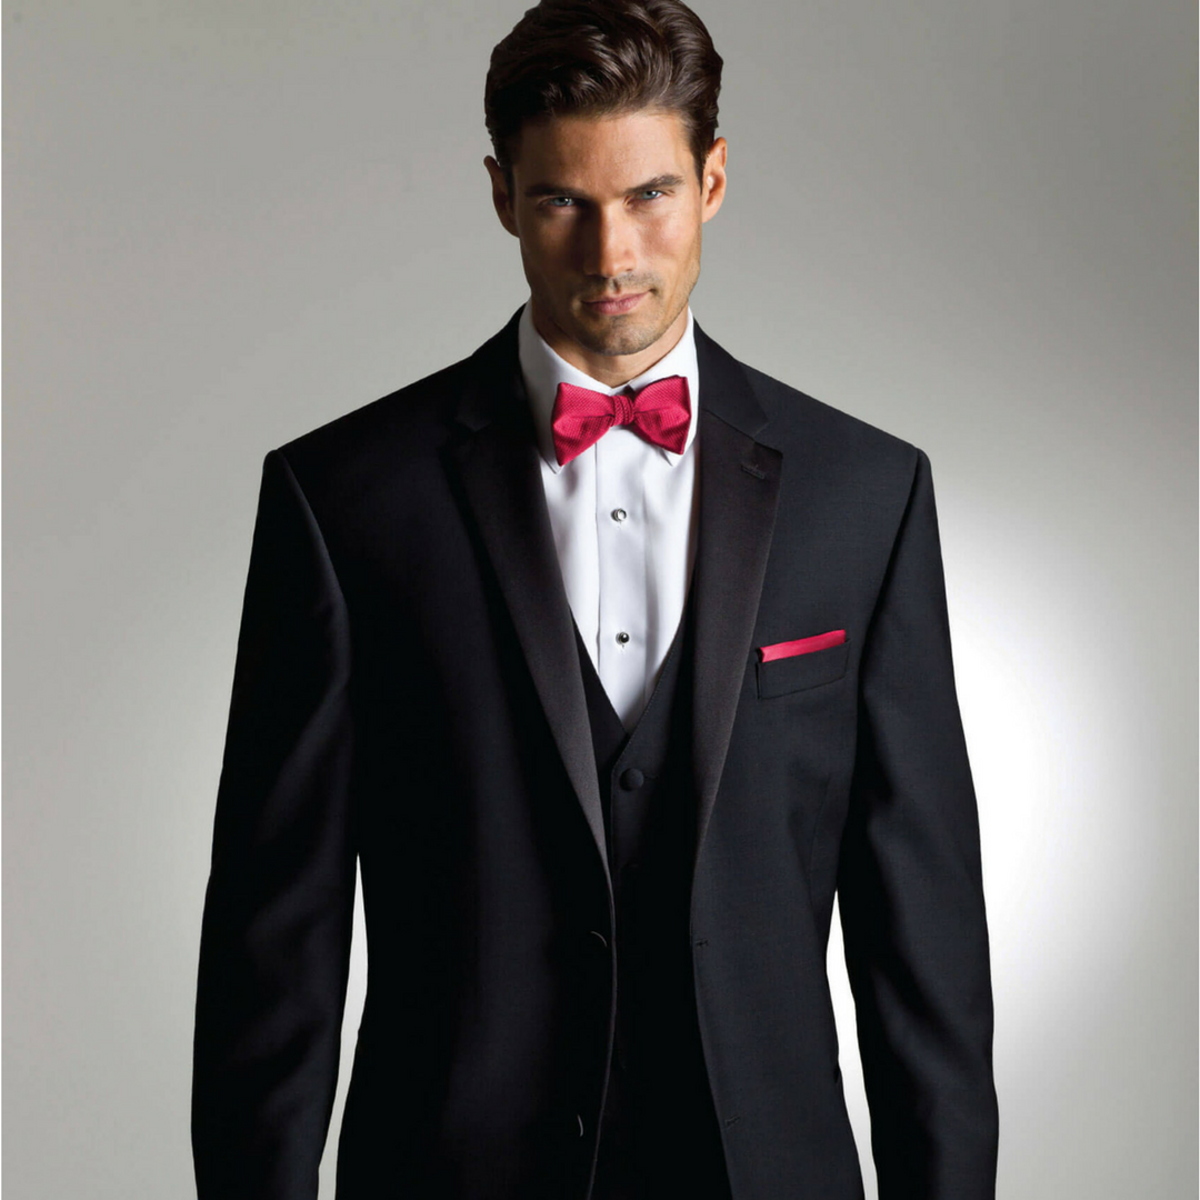 Idea Casa Full Sarno class, elegance, sophistication. in a tuxedo by sarno you'll